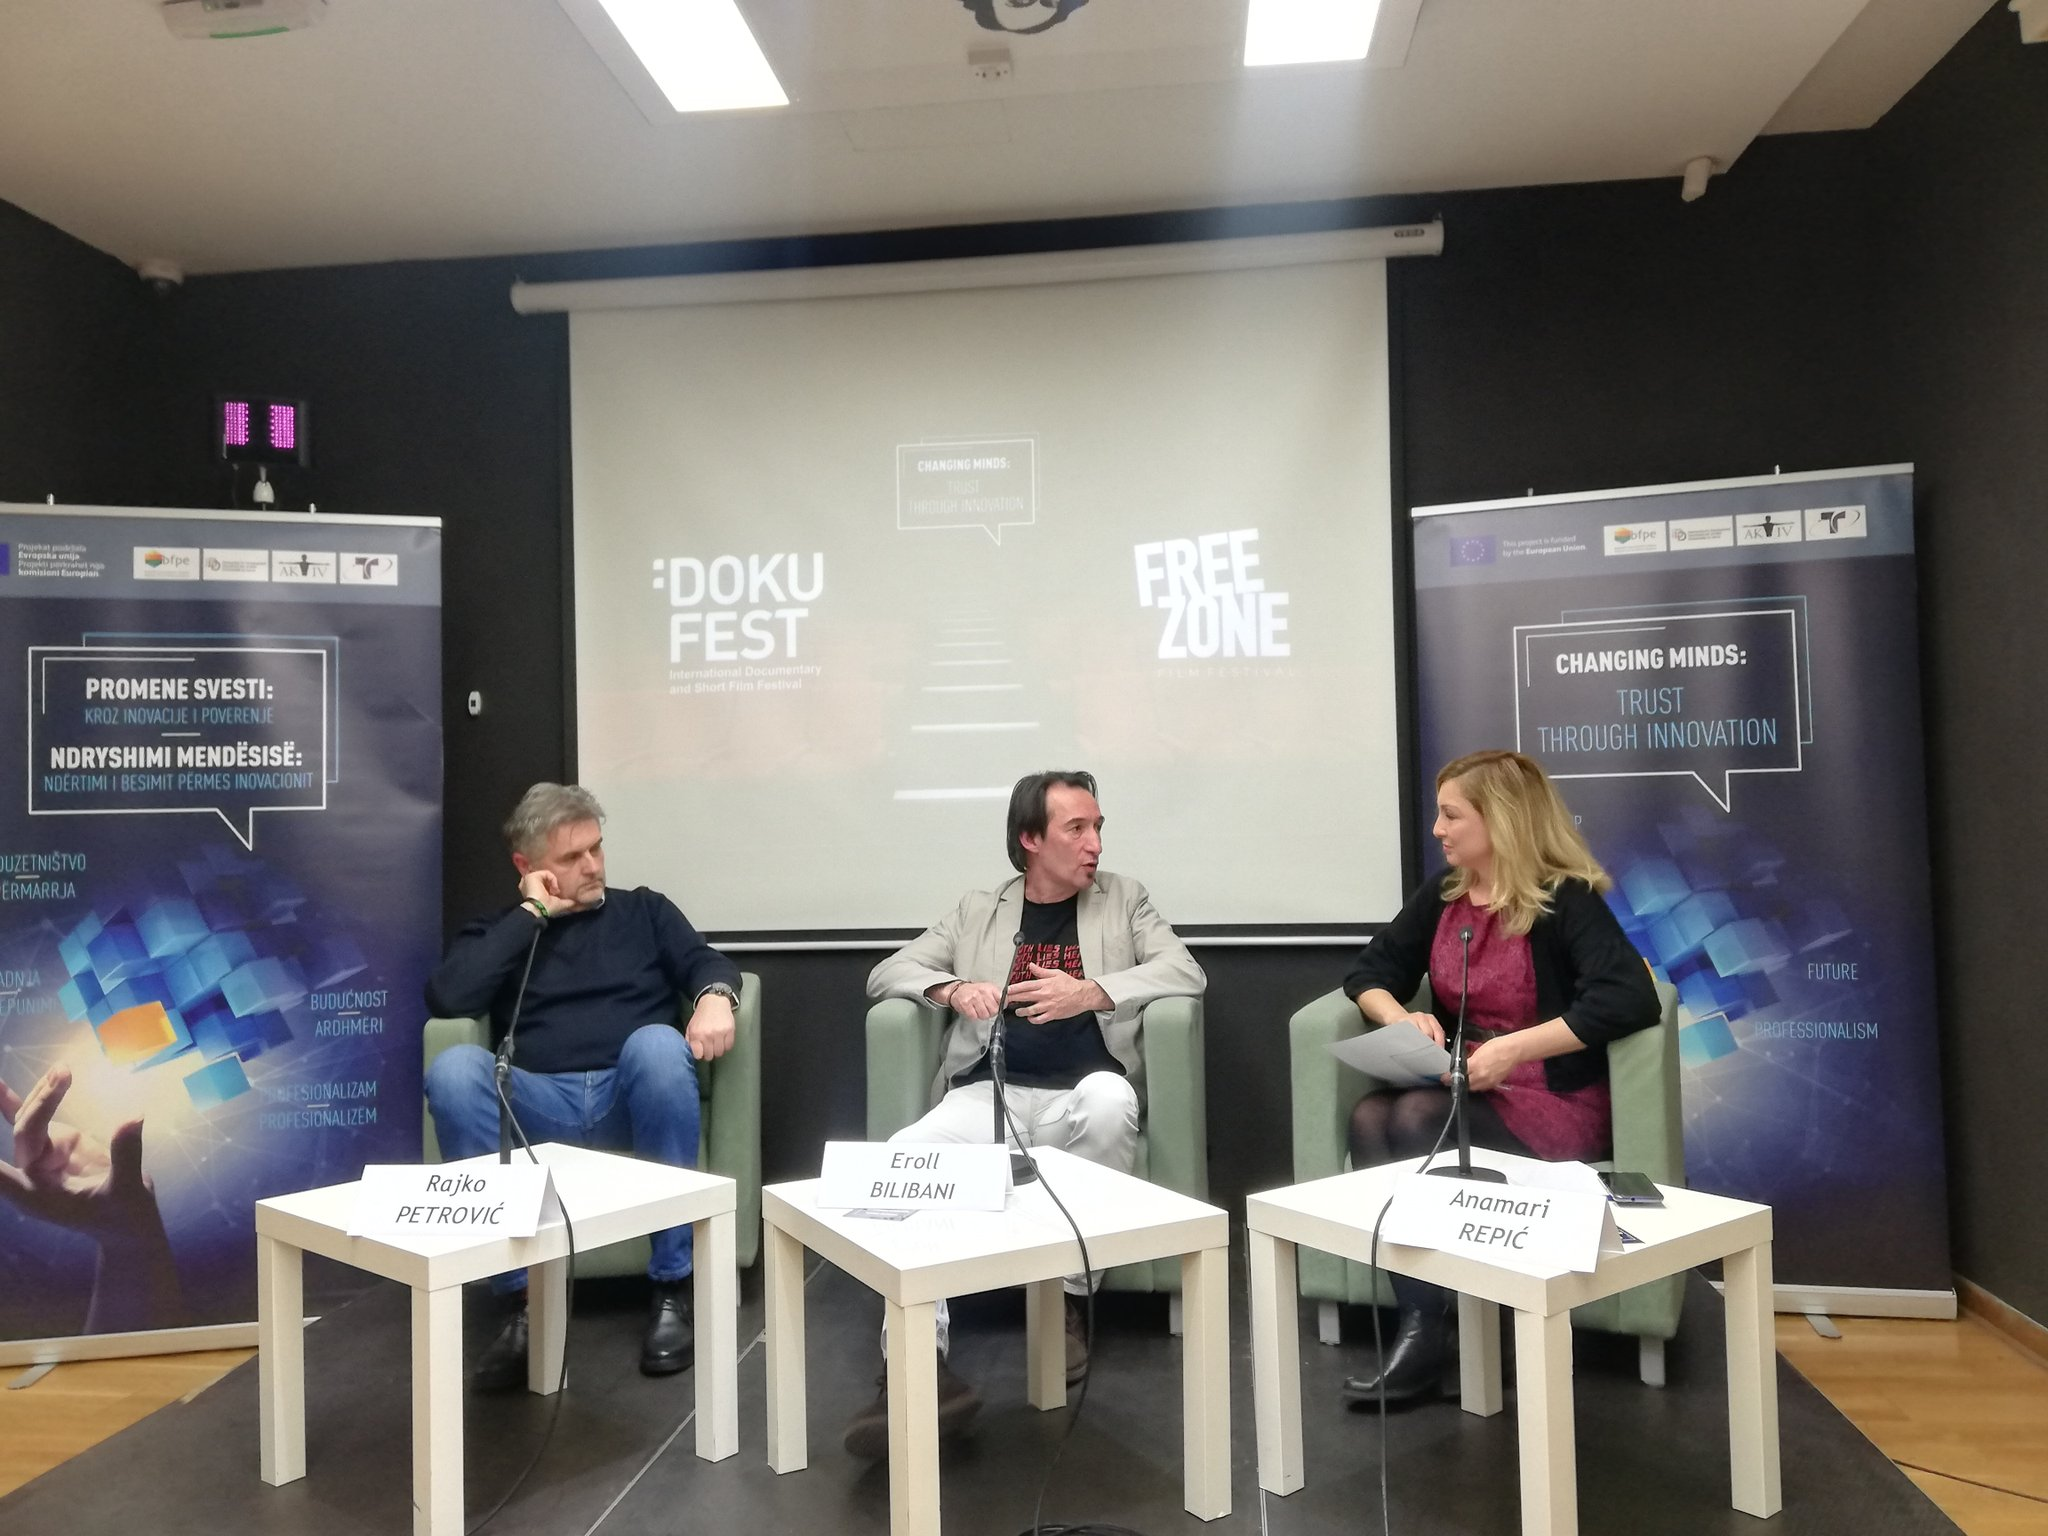 Rajko Petrovic and Eroll Bilibani: exceptional cooperation and achievements of film festivals from Serbia and Kosovo